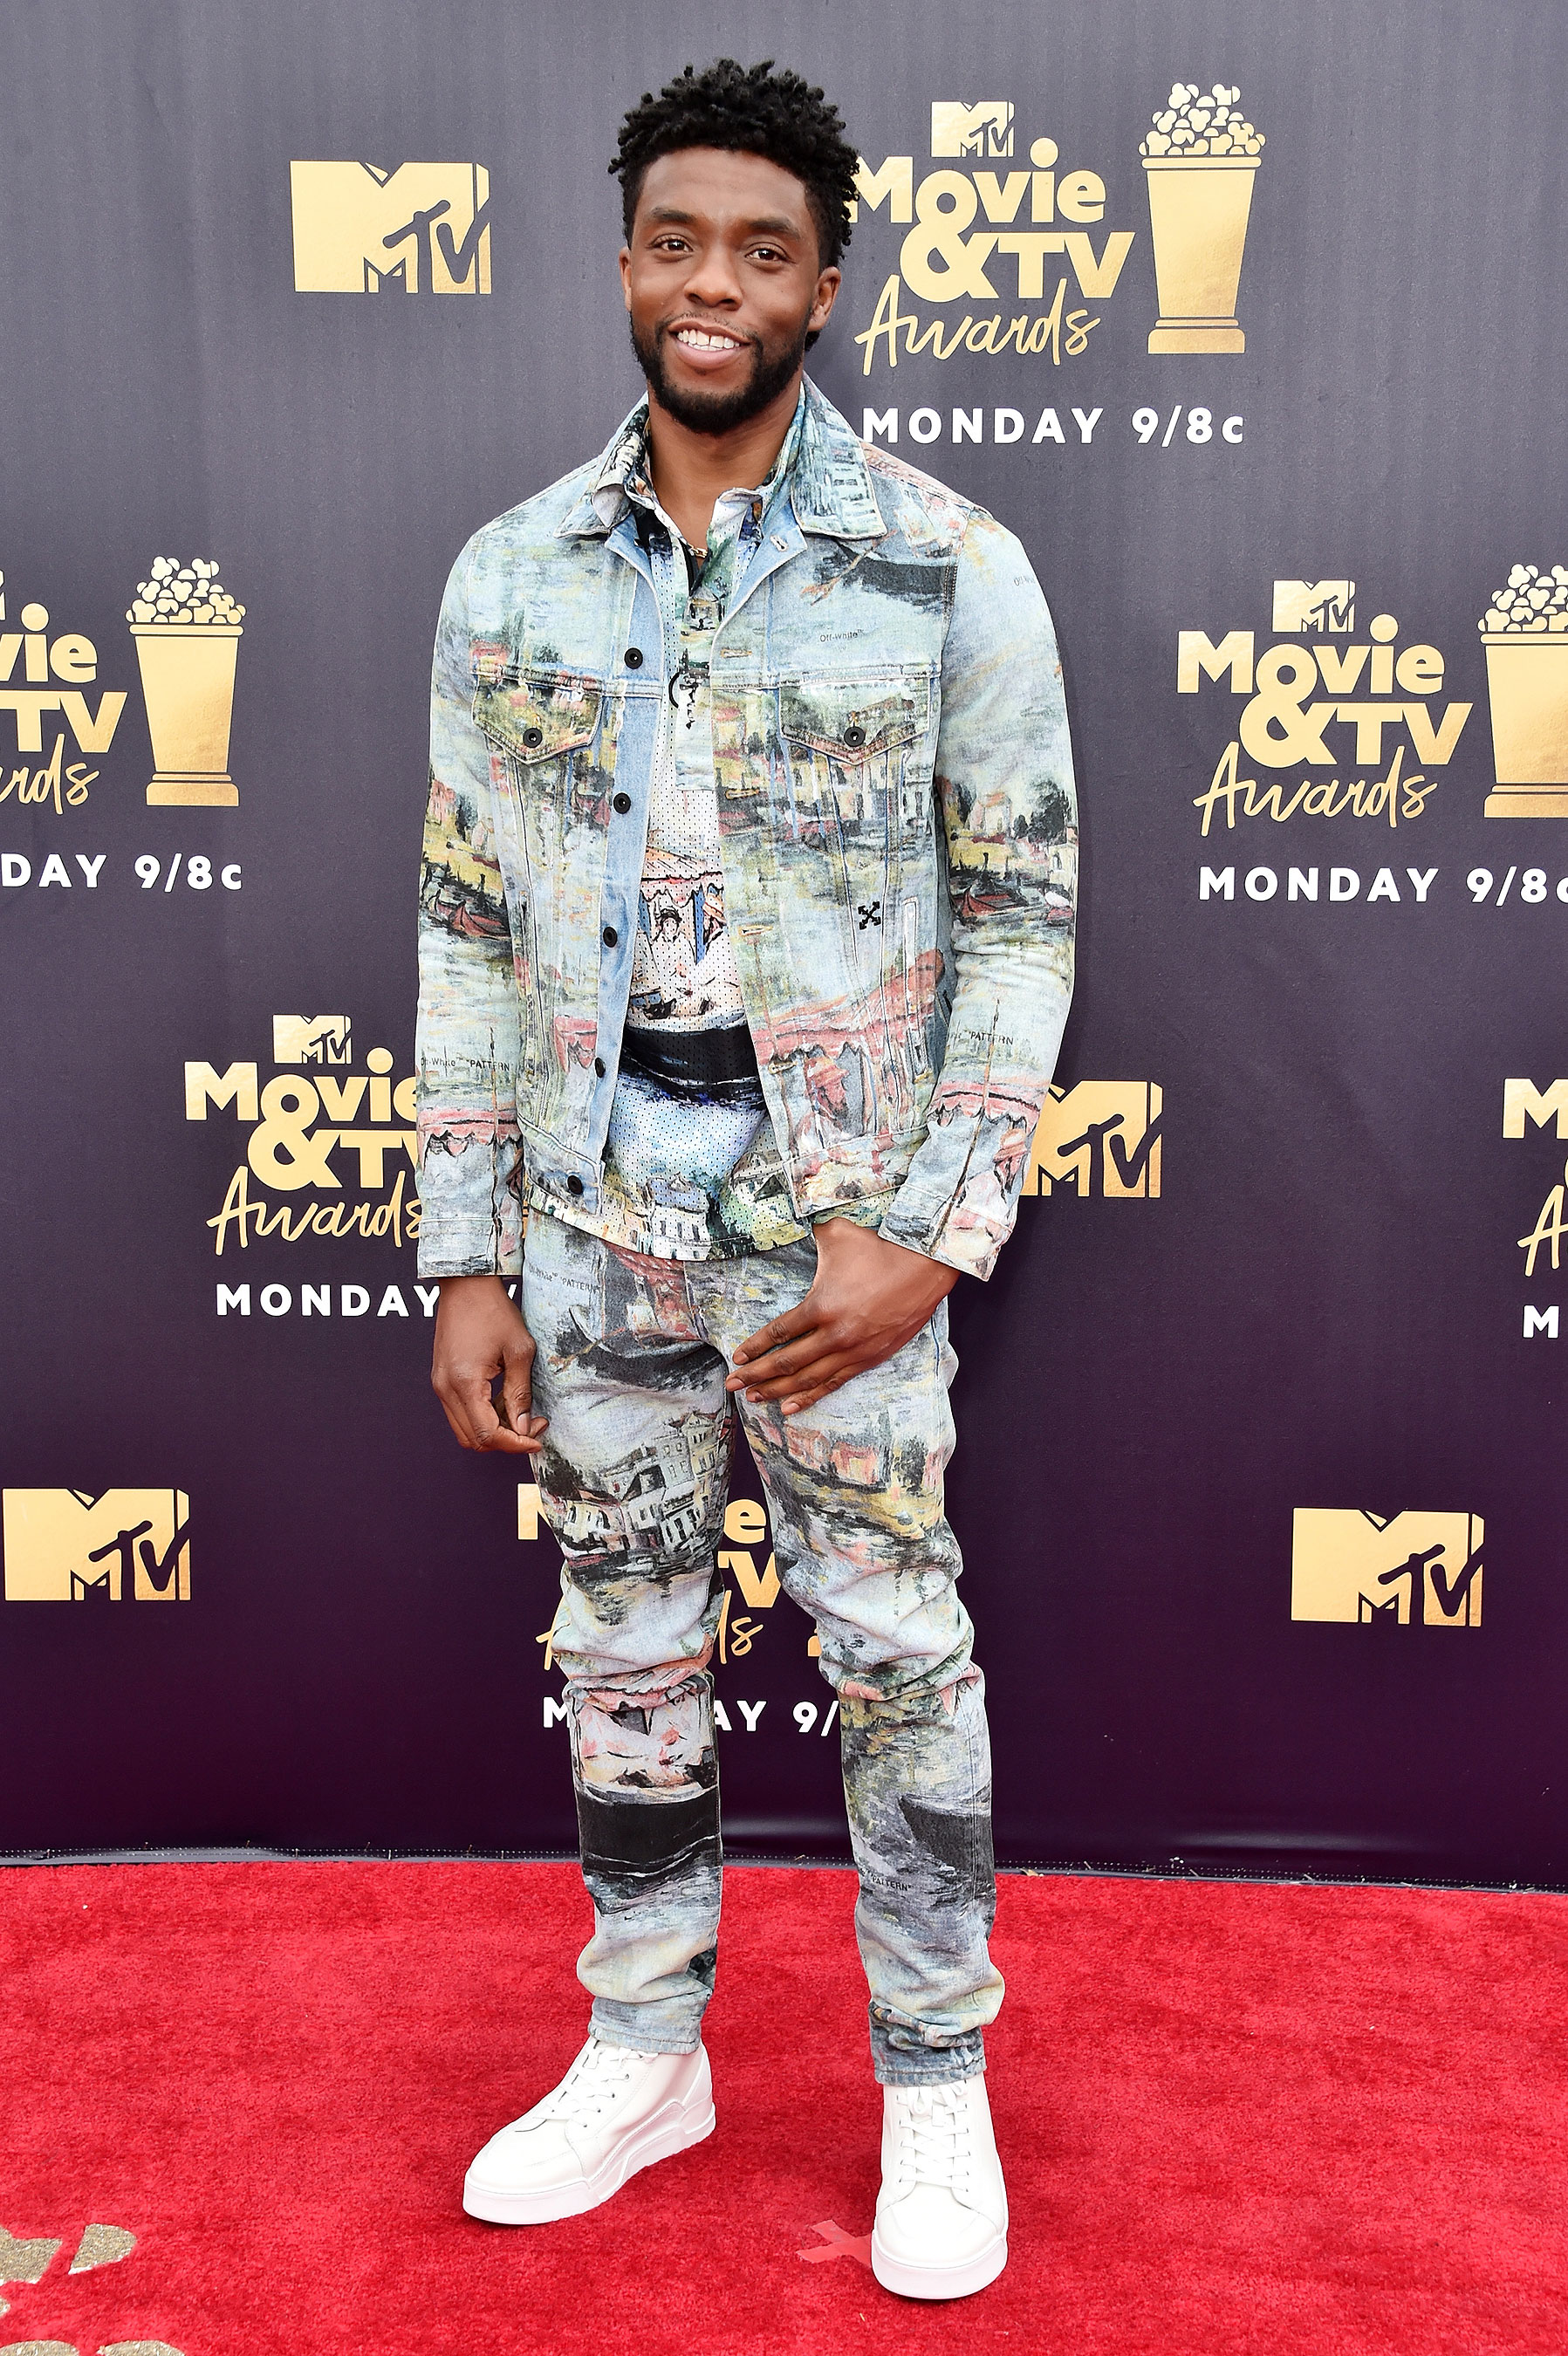 SANTA MONICA, CA - JUNE 16:  Actor Chadwick Boseman attends the 2018 MTV Movie And TV Awards at Barker Hangar on June 16, 2018 in Santa Monica, California.  (Photo by Alberto E. Rodriguez/Getty Images for MTV)